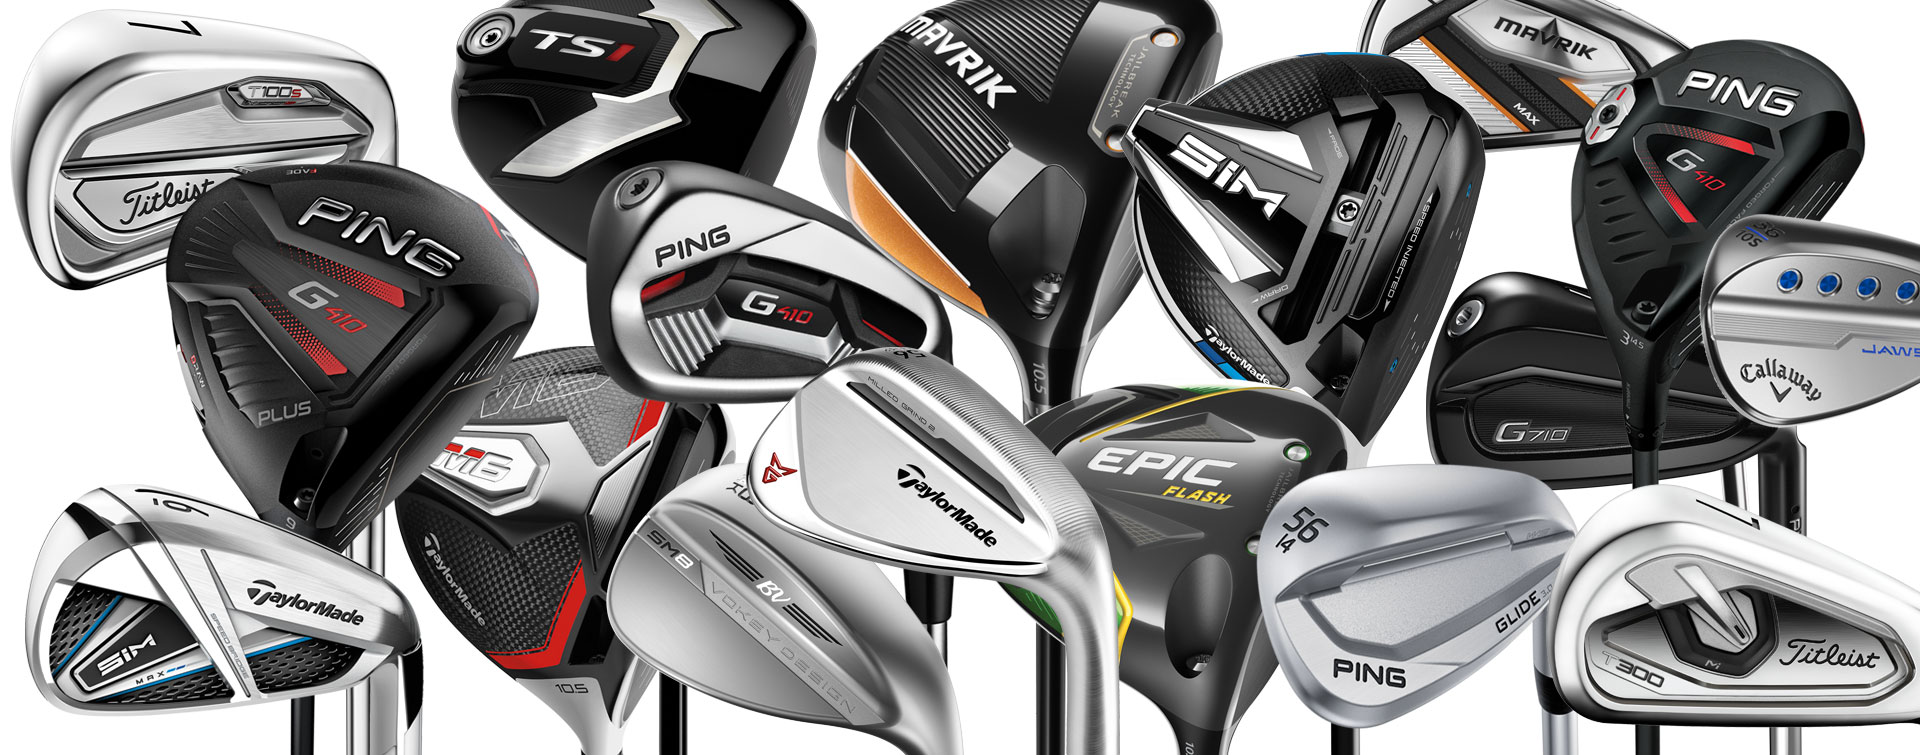 Pre Owned Golf Clubs